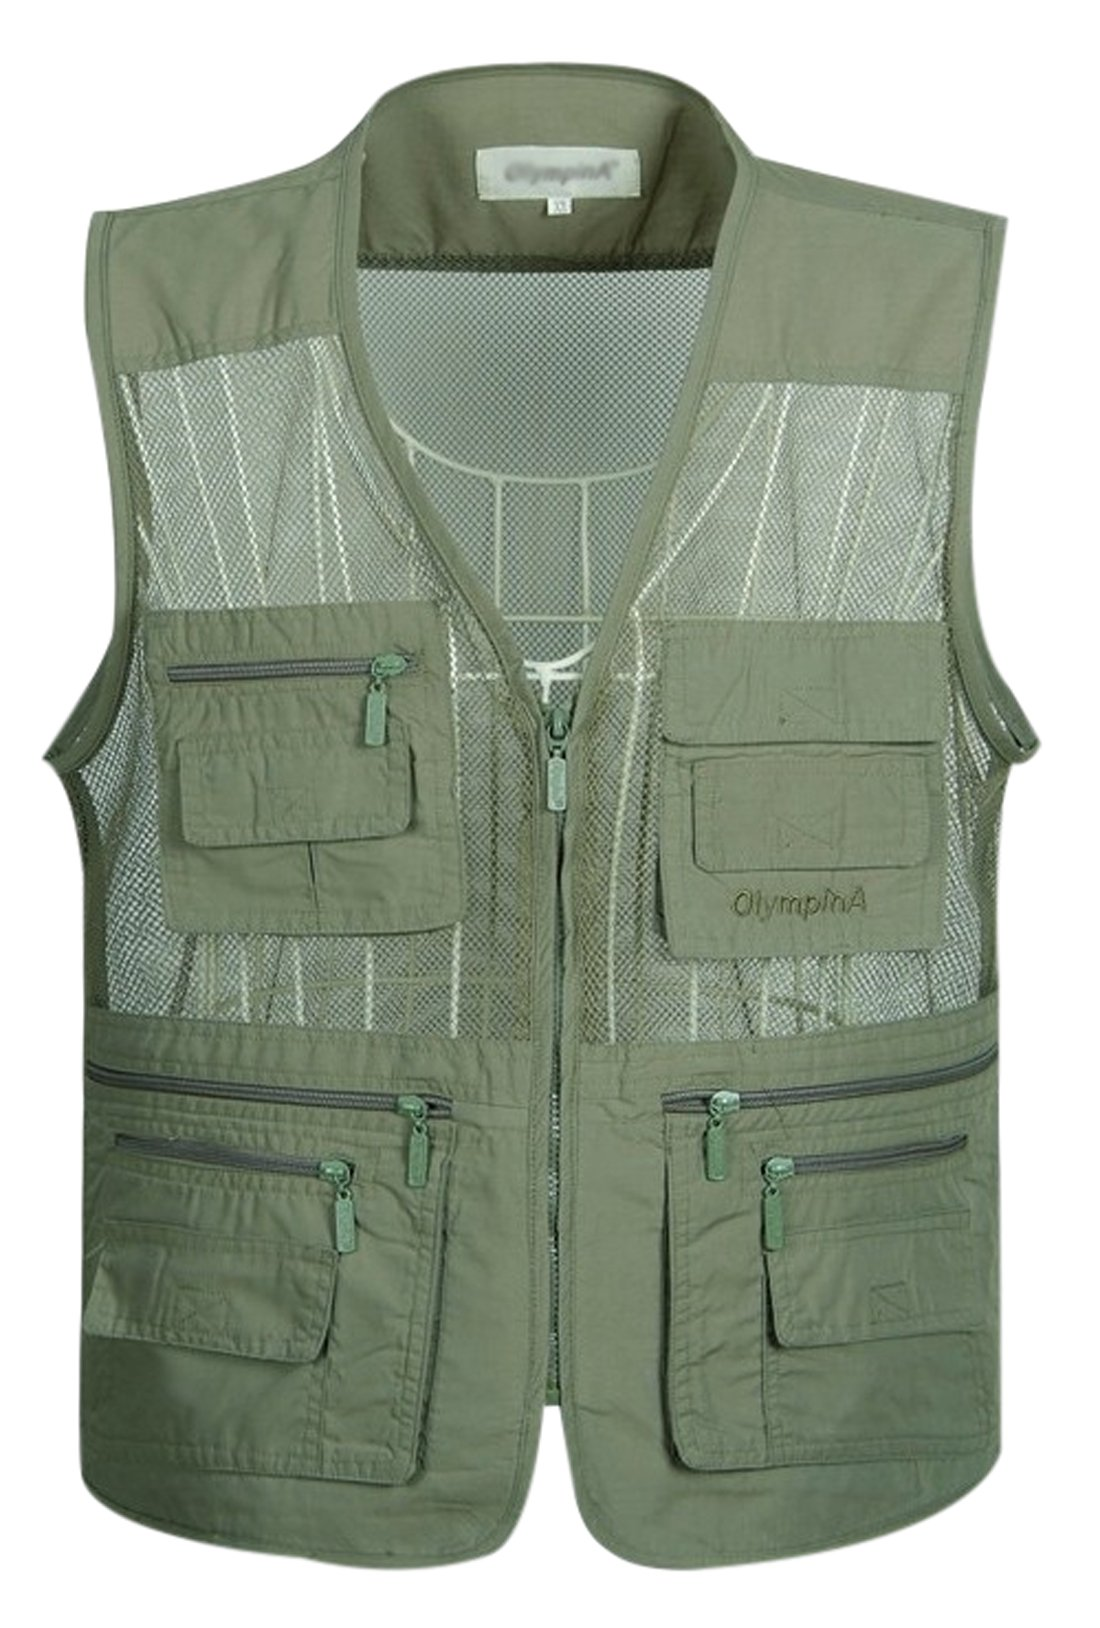 Gihuo Men's Outdoor Leisure Lightweight Quick-Dry Pockets Fishing Photo Journalist Vest Plus Size (X-L, Army Green)